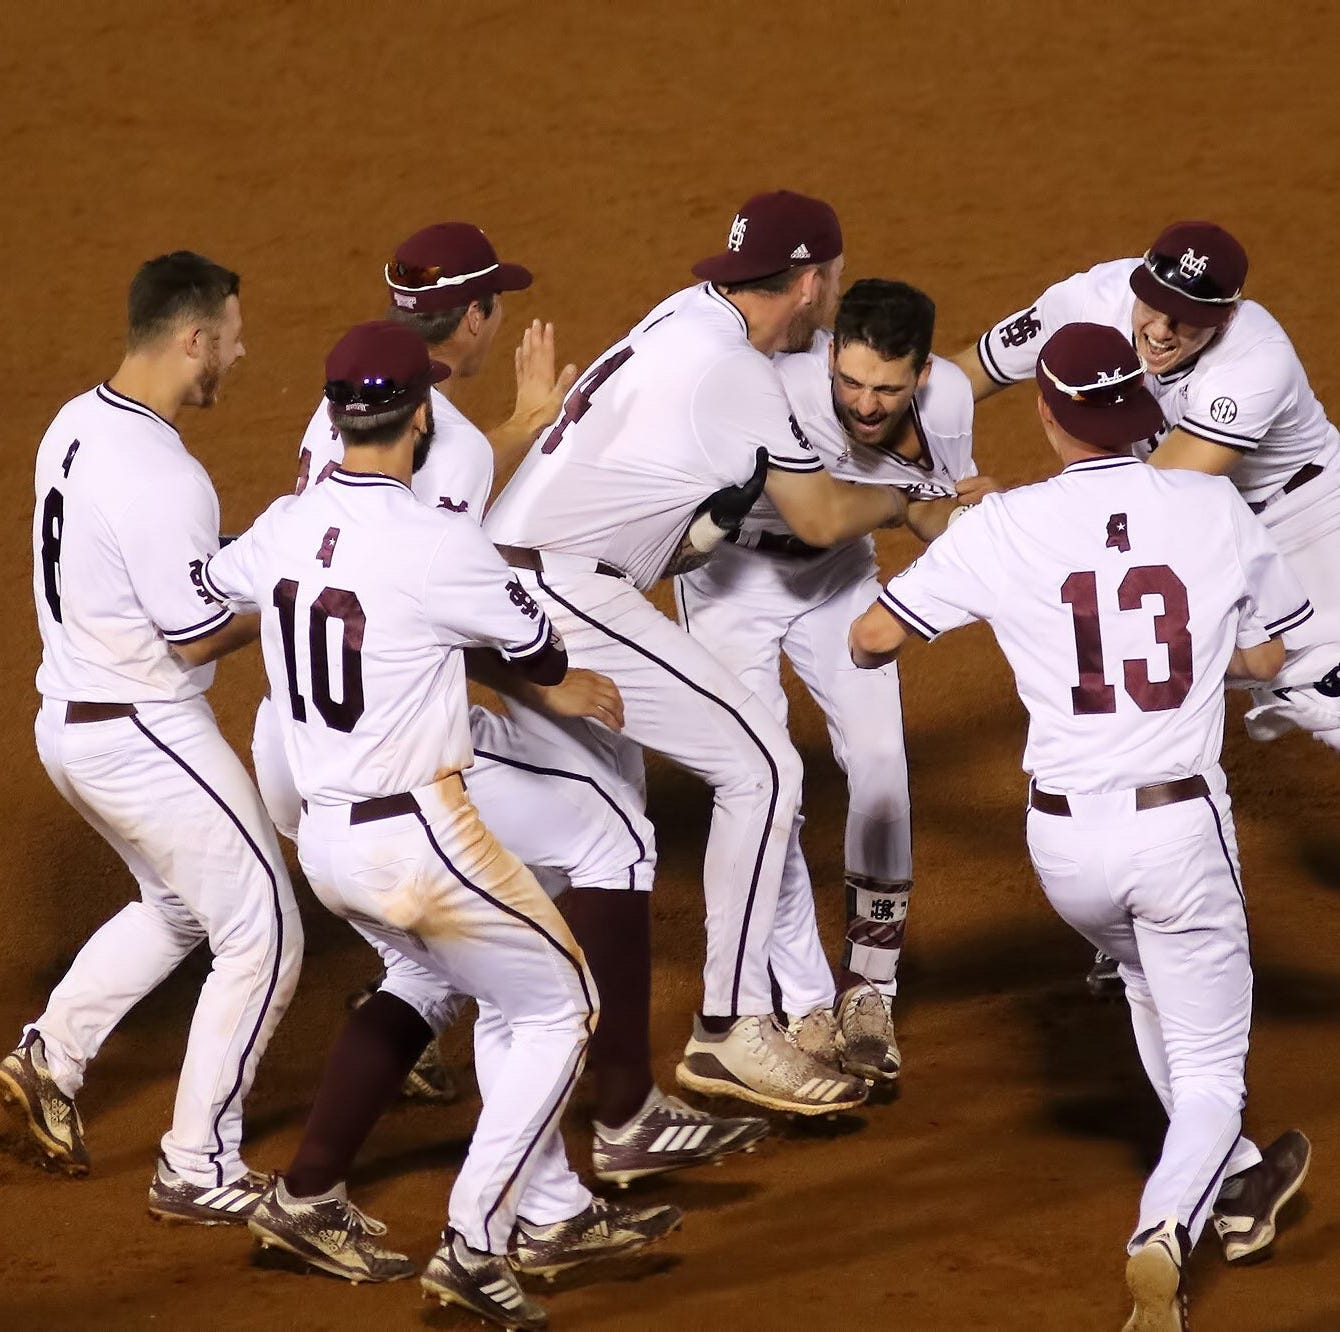 Mississippi State walks off with win over LSU in longest SEC Baseball Tournament game ever